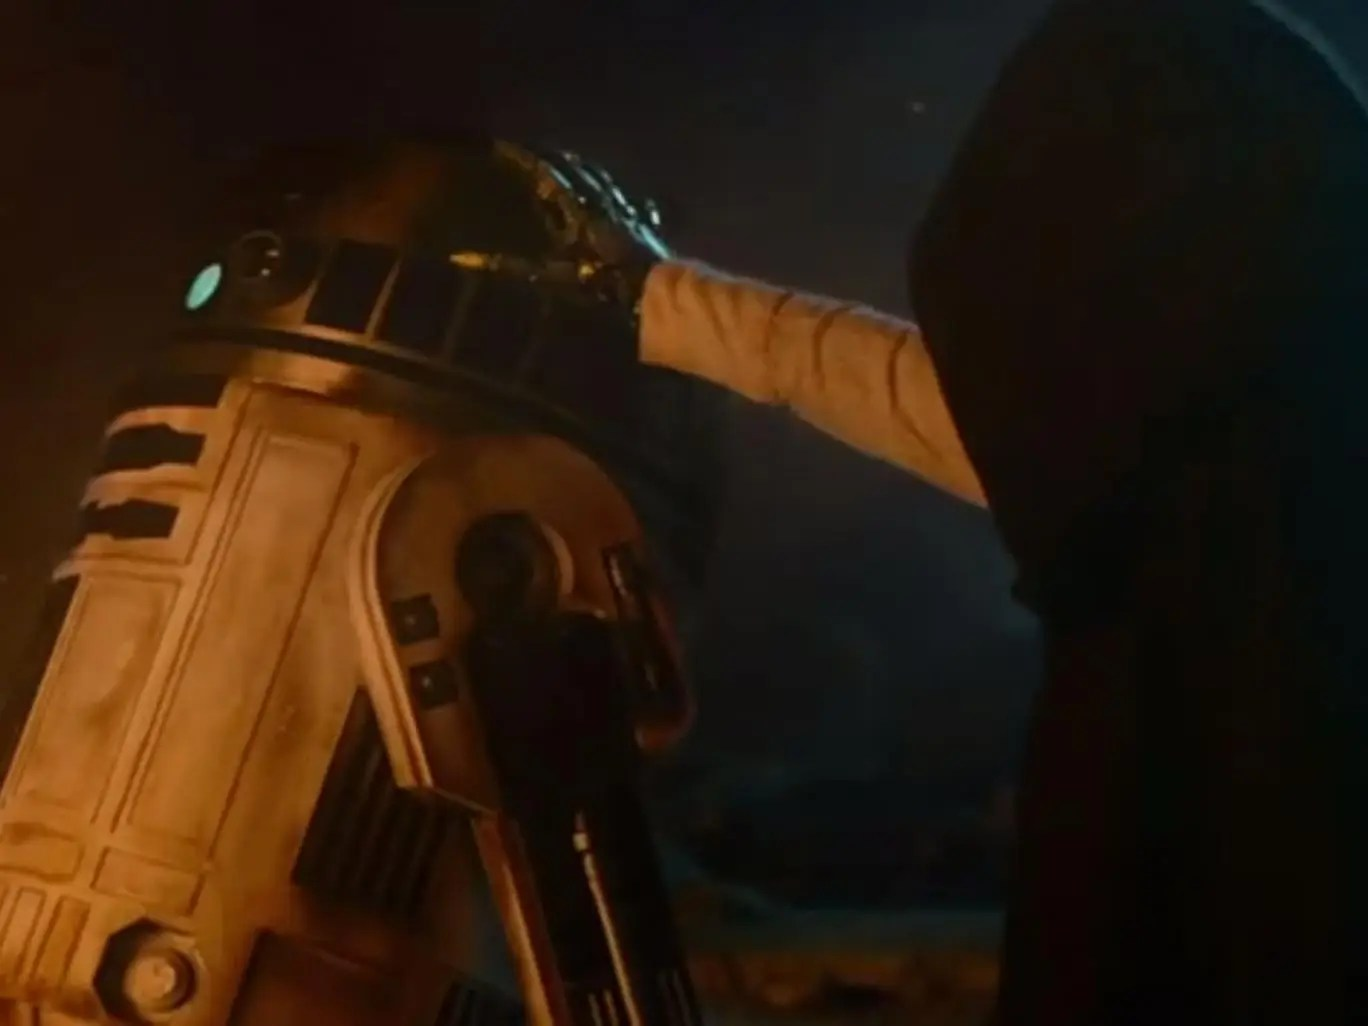 A mysterious hooded figure touches R2D2 in the latest trailer